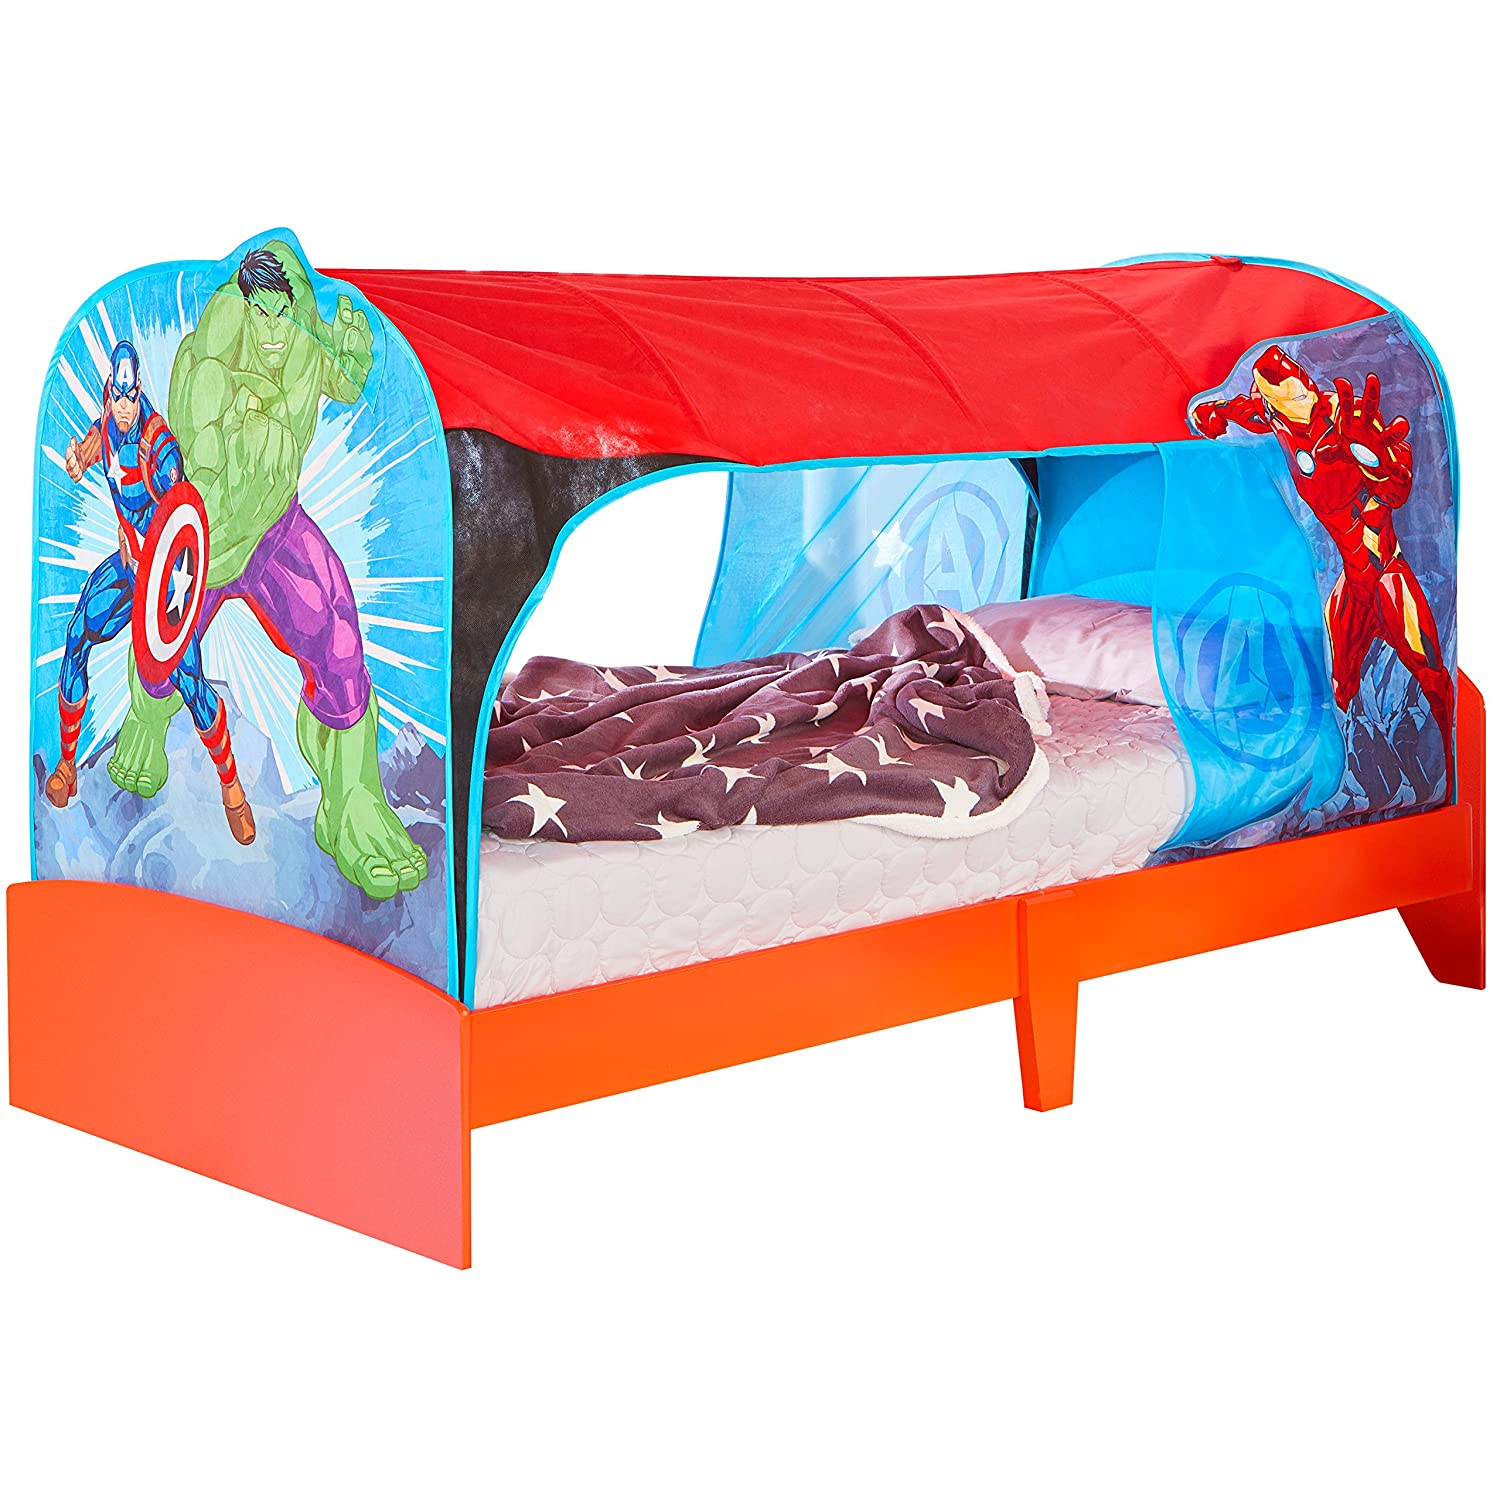 Marvel Avengers Kids Single Over Bed Fabric Tent by HelloHome - Captain America, Hulk and Iron Man Worlds Apart 491ANE